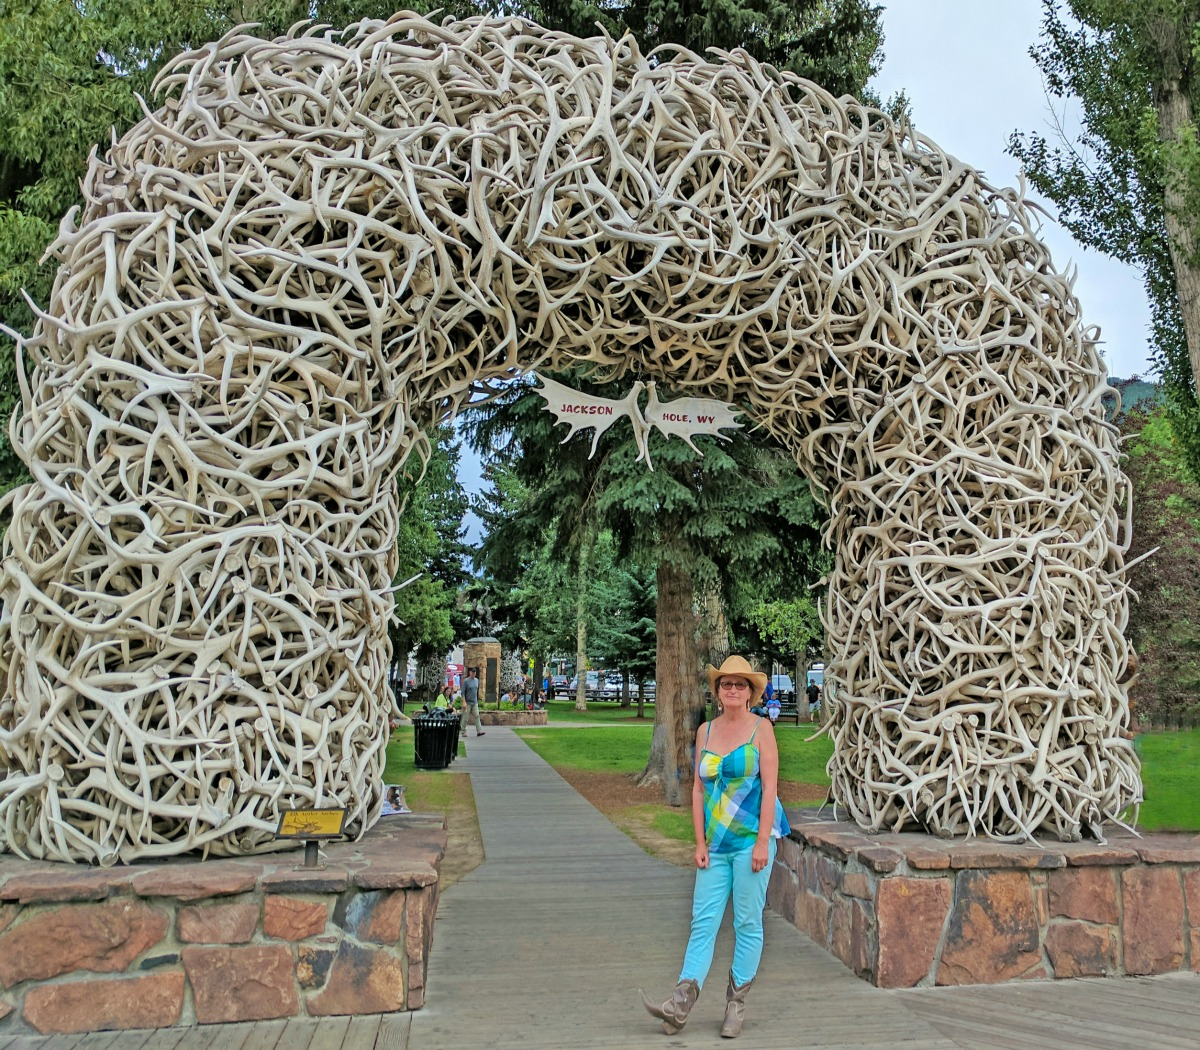 The main square in Jackson Hole, Wyoming.